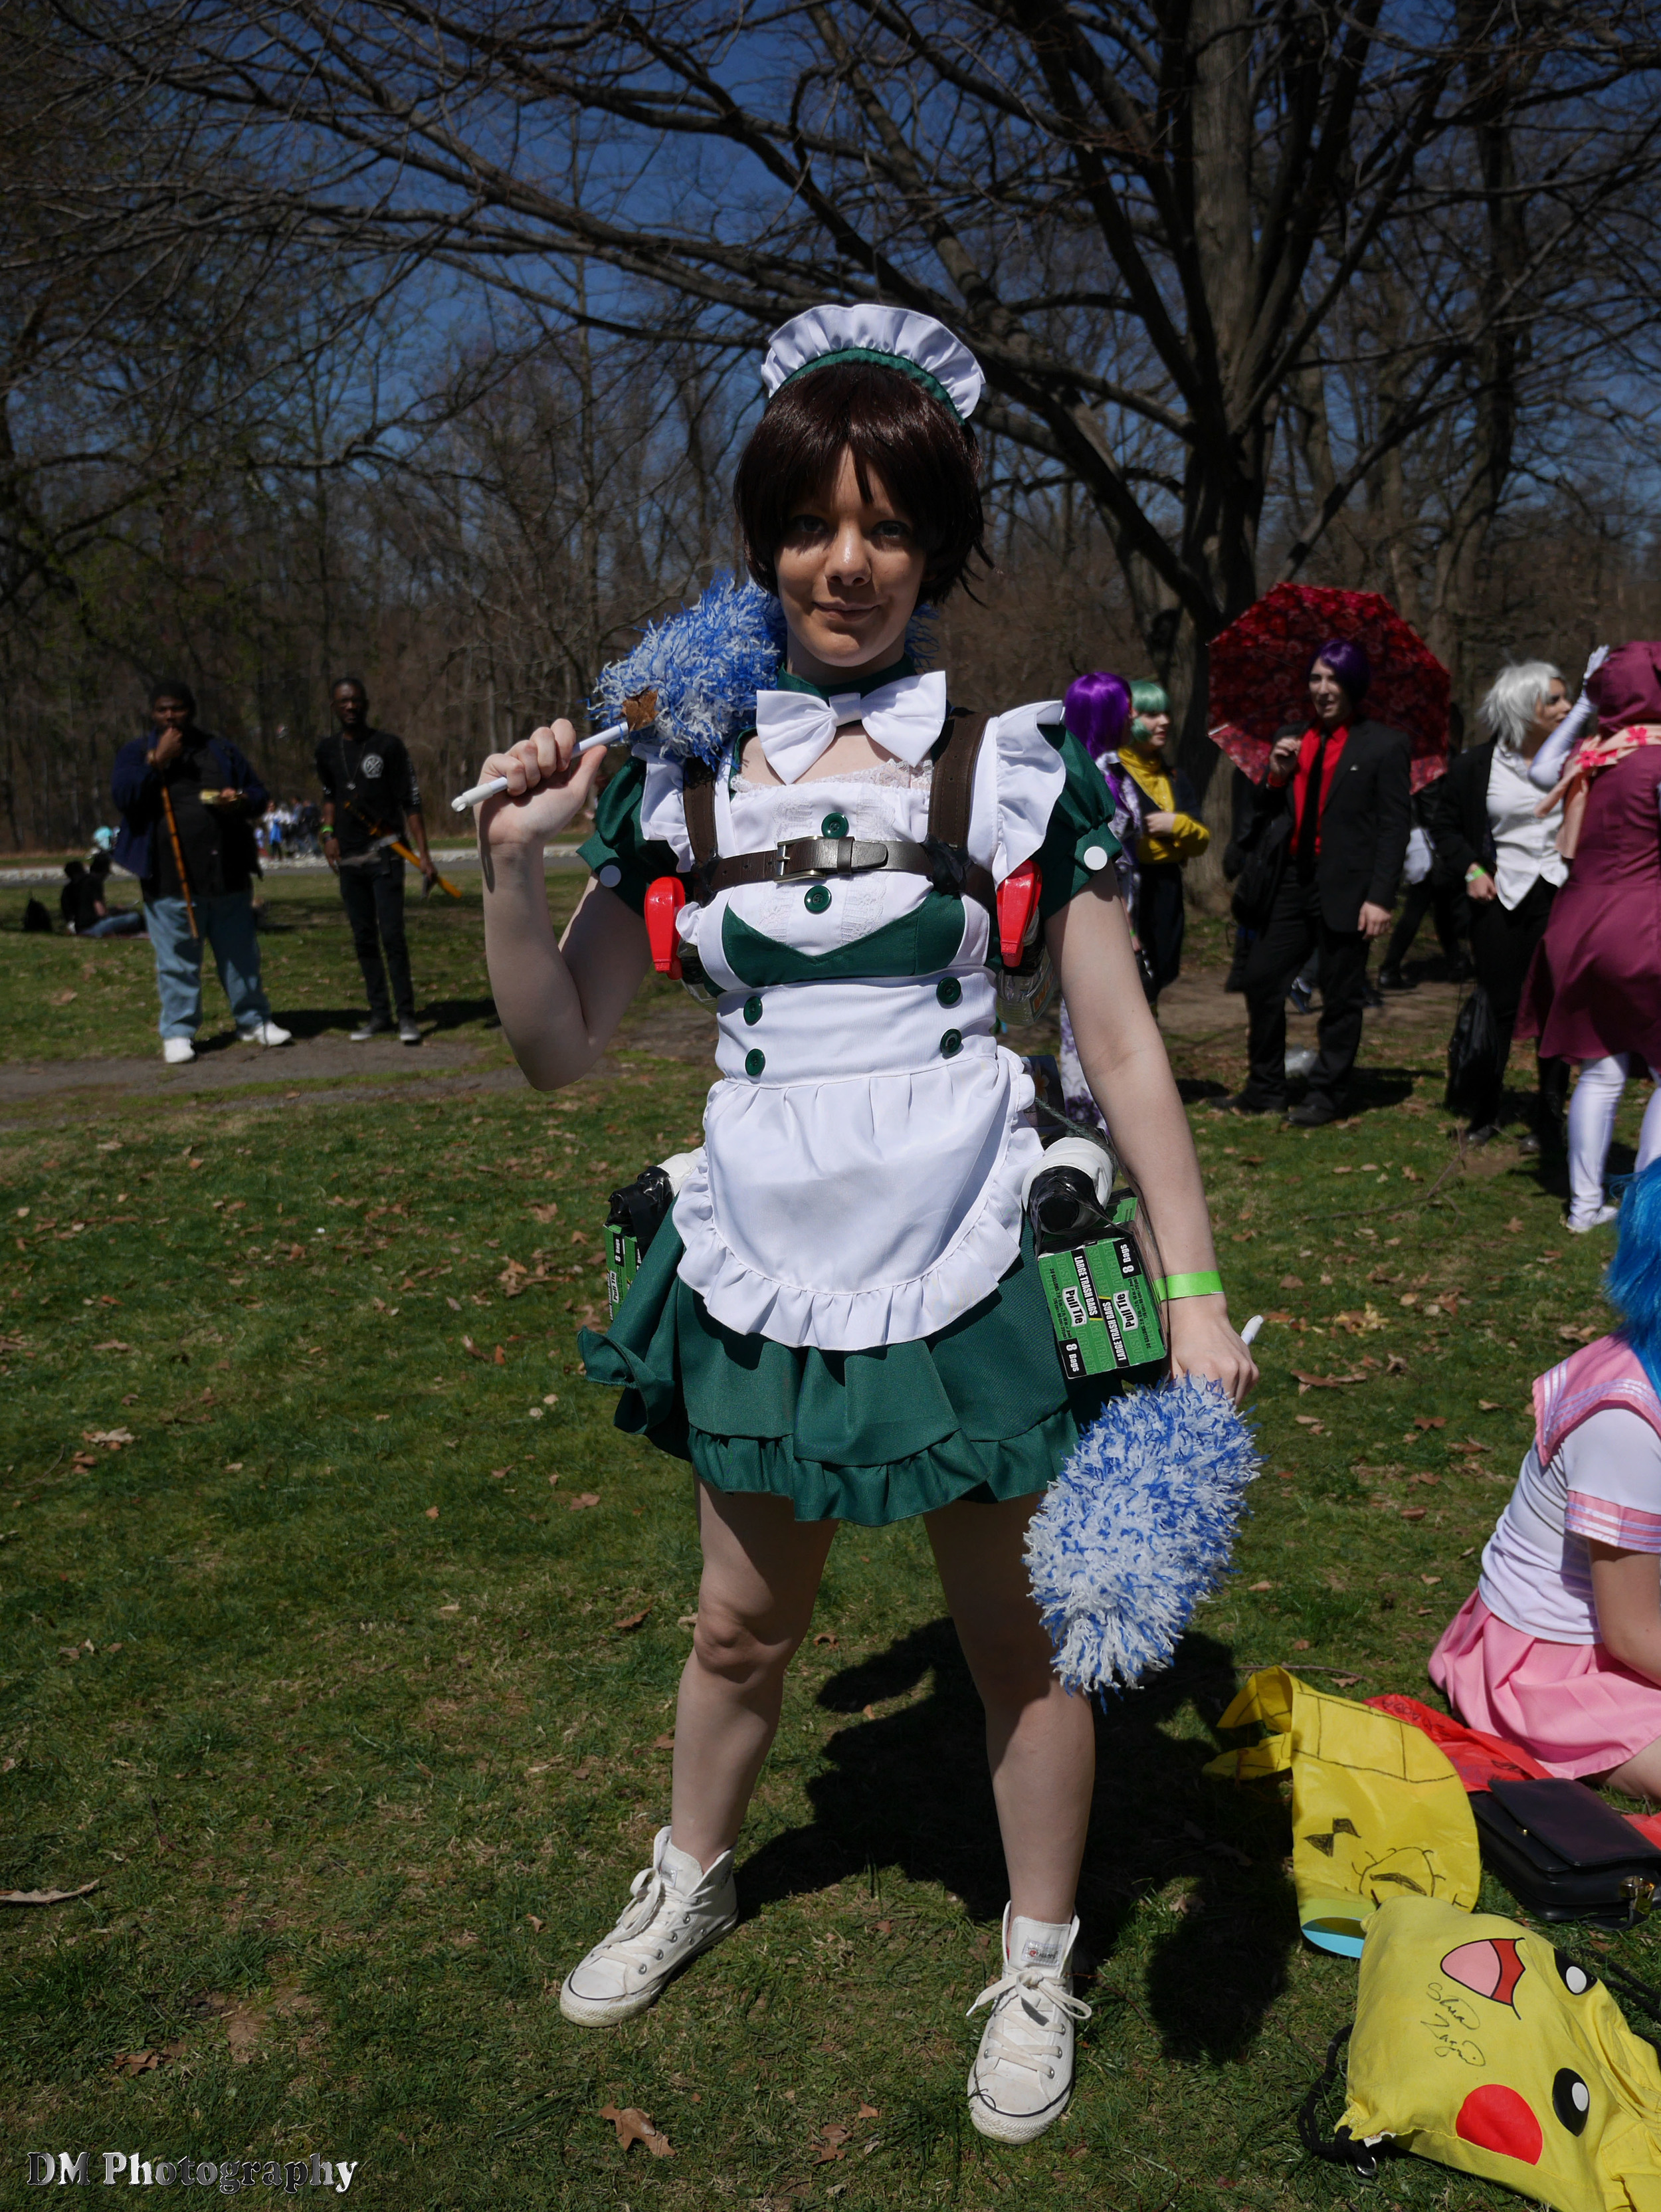 An original genderbend cosplay design of Eren Yaeger from Attack on Titan featuring Eren in a maid outfit with all of his weapons and gear replaced by cleaning products